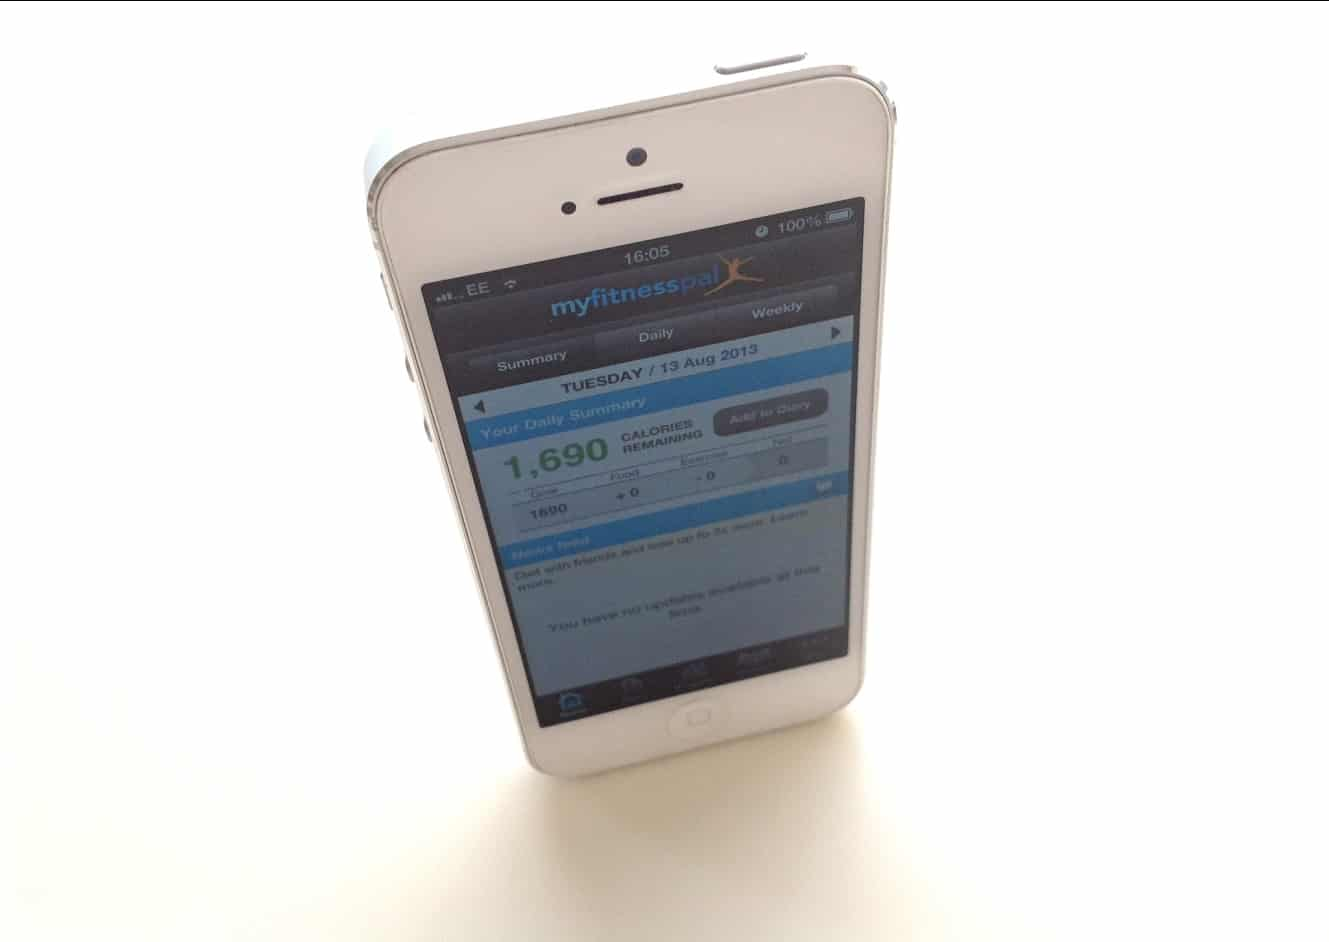 On the Go Fitness Pro - A Personal Trainer's Review of MyFitnessPal